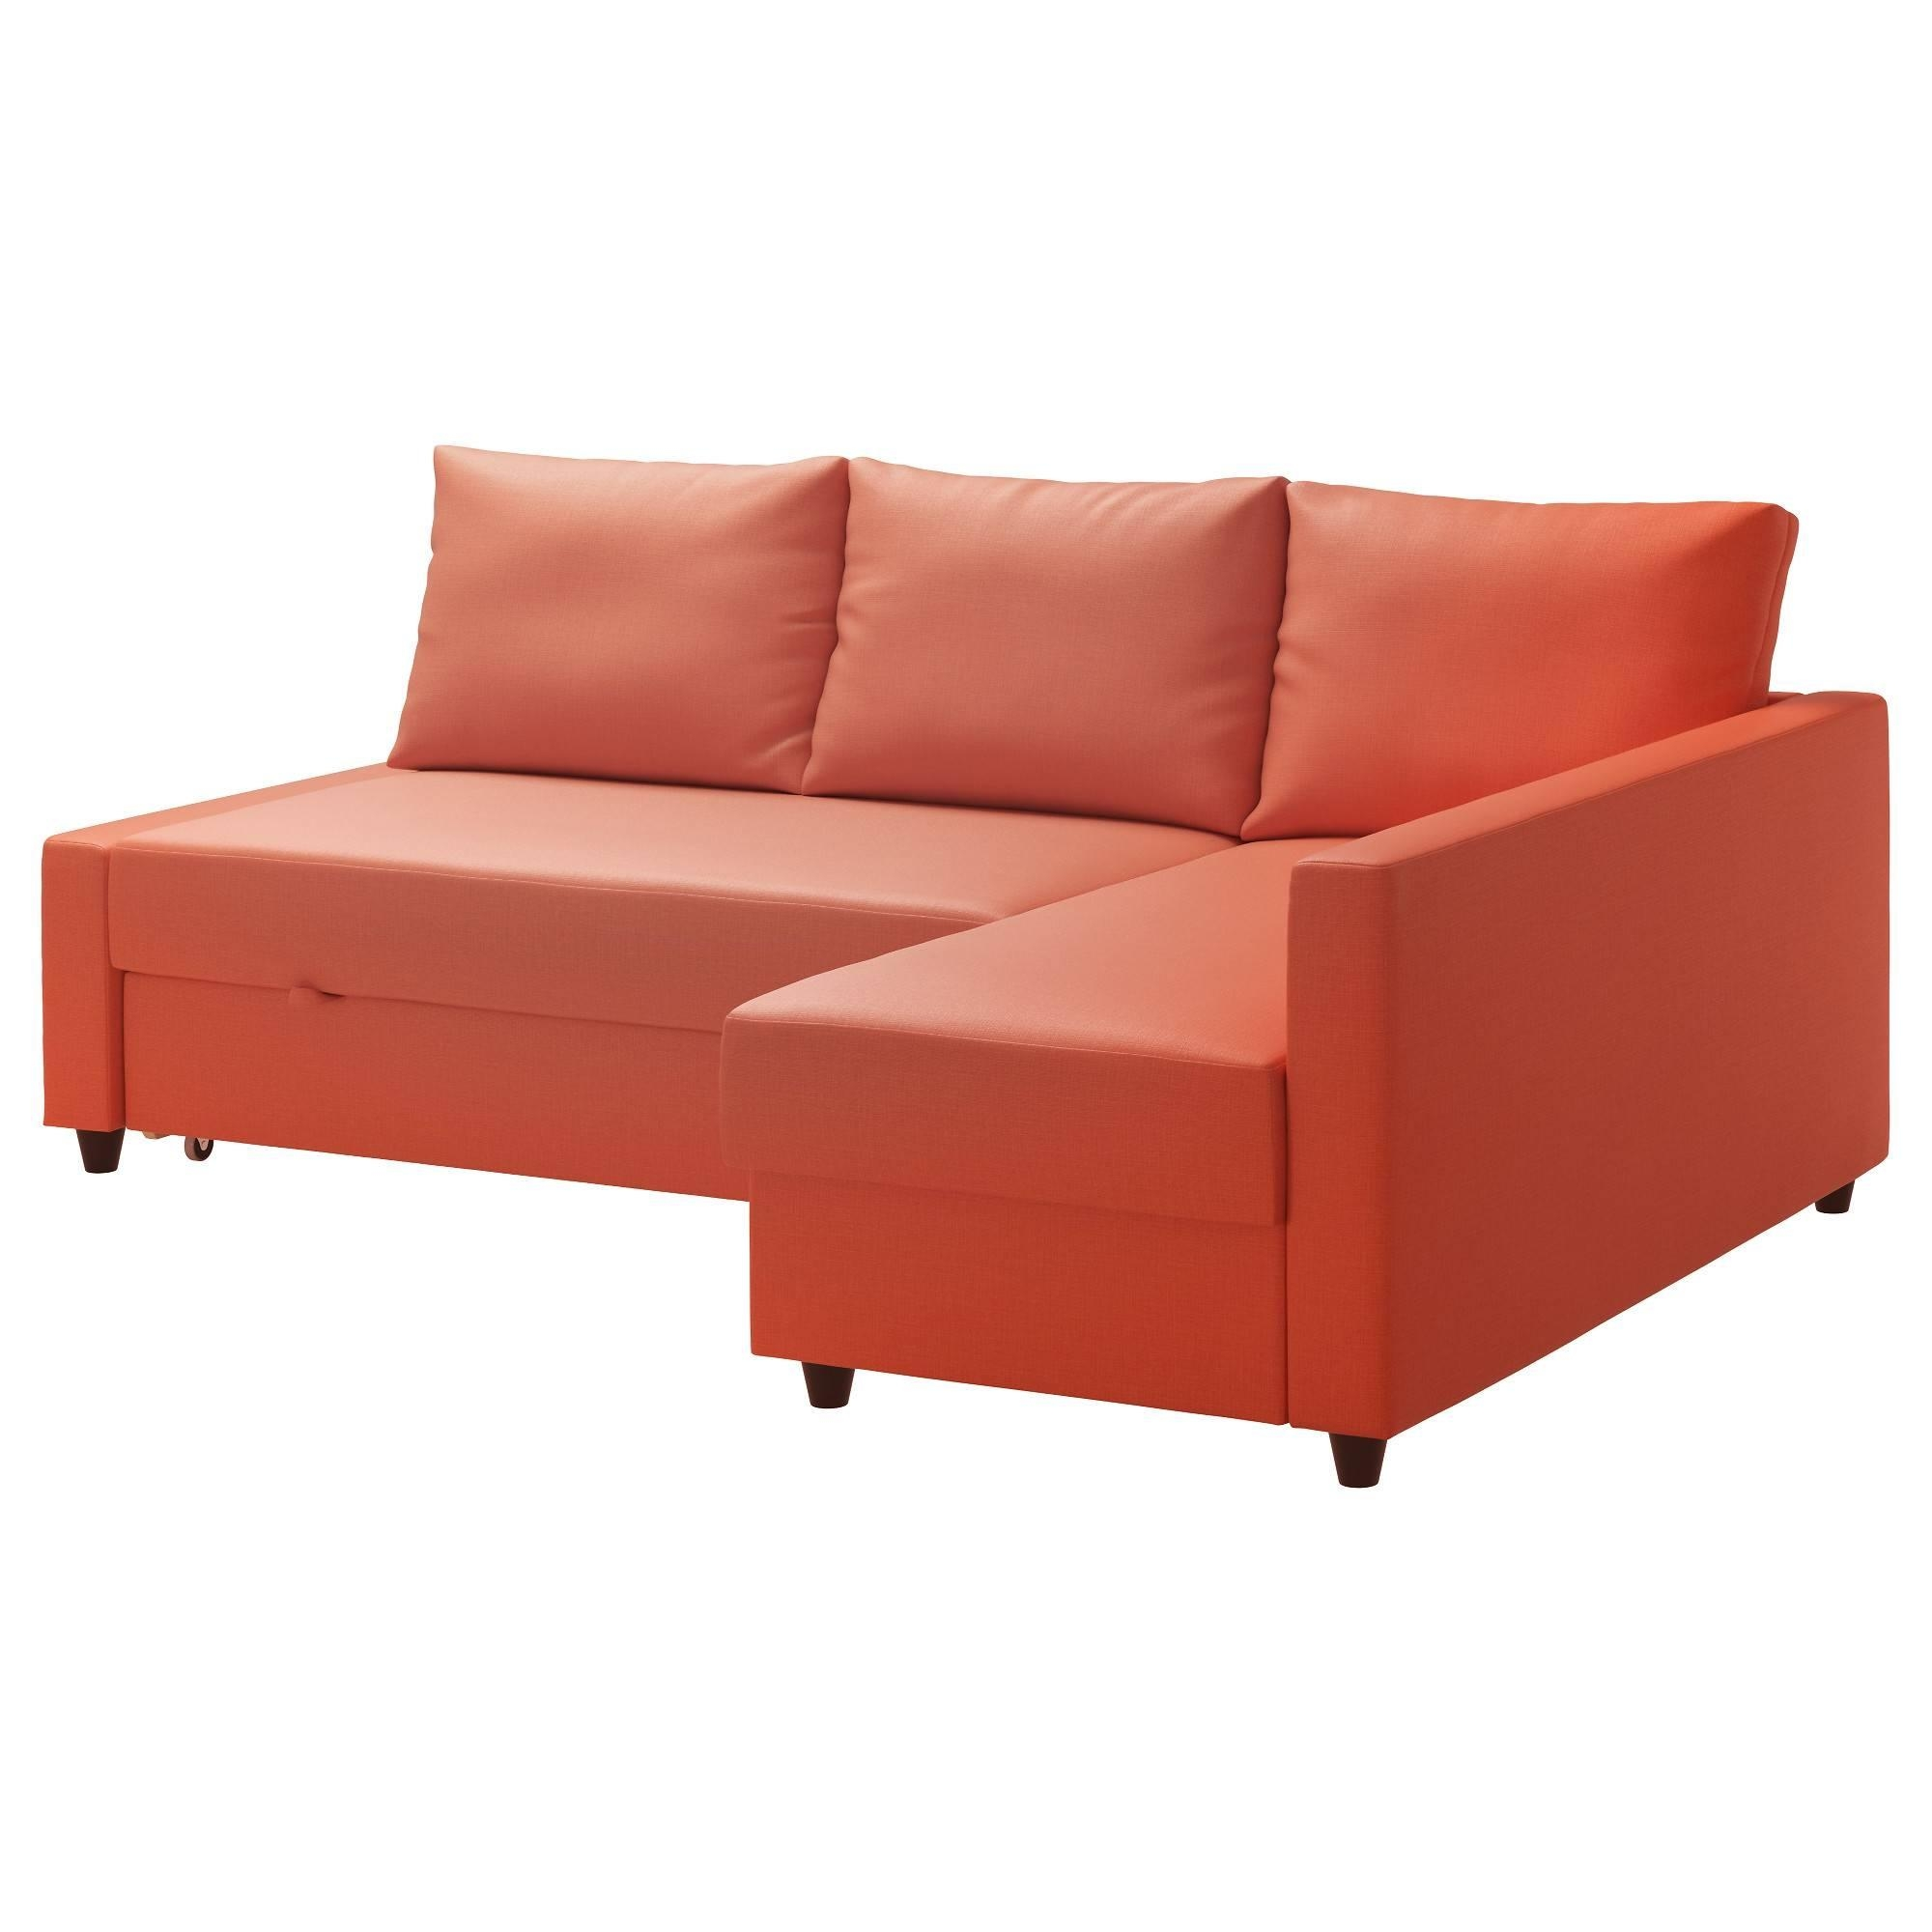 Sofa : Sofa Bed Ikea Usa Equanimous Discount Sofa Beds' Momentous In Red Sofa Beds Ikea (Image 17 of 20)